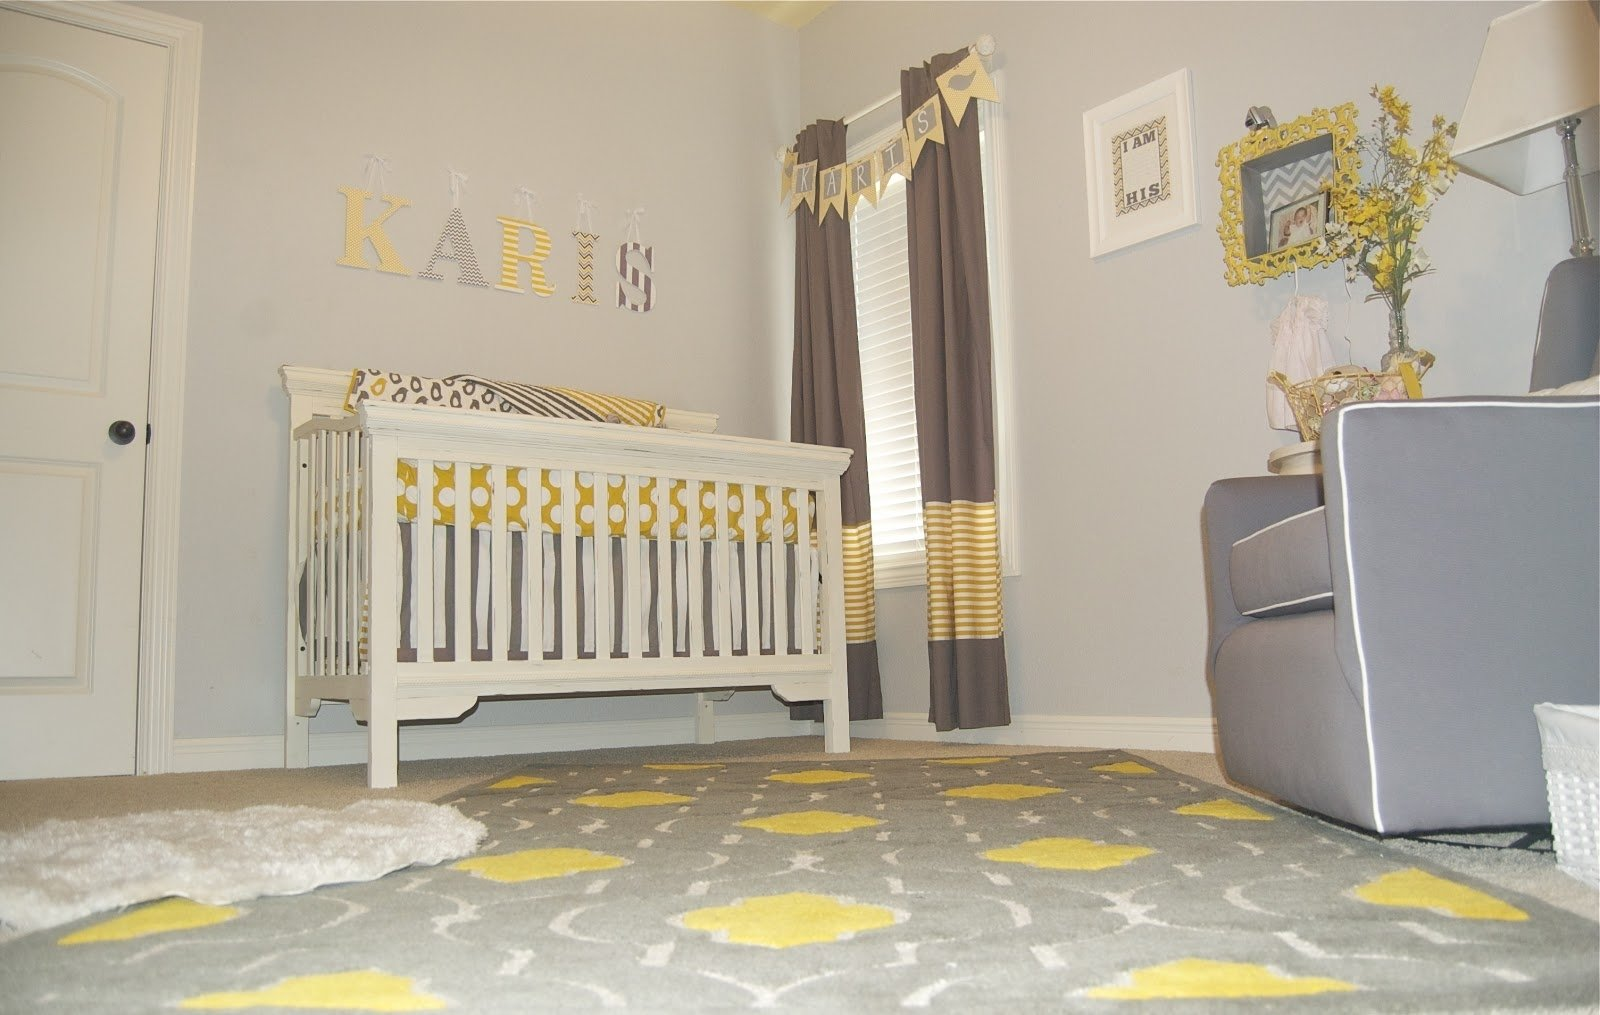 10 Fashionable Yellow And Gray Nursery Ideas baby nursery decor name sign wall decor yellow and gray baby 2020